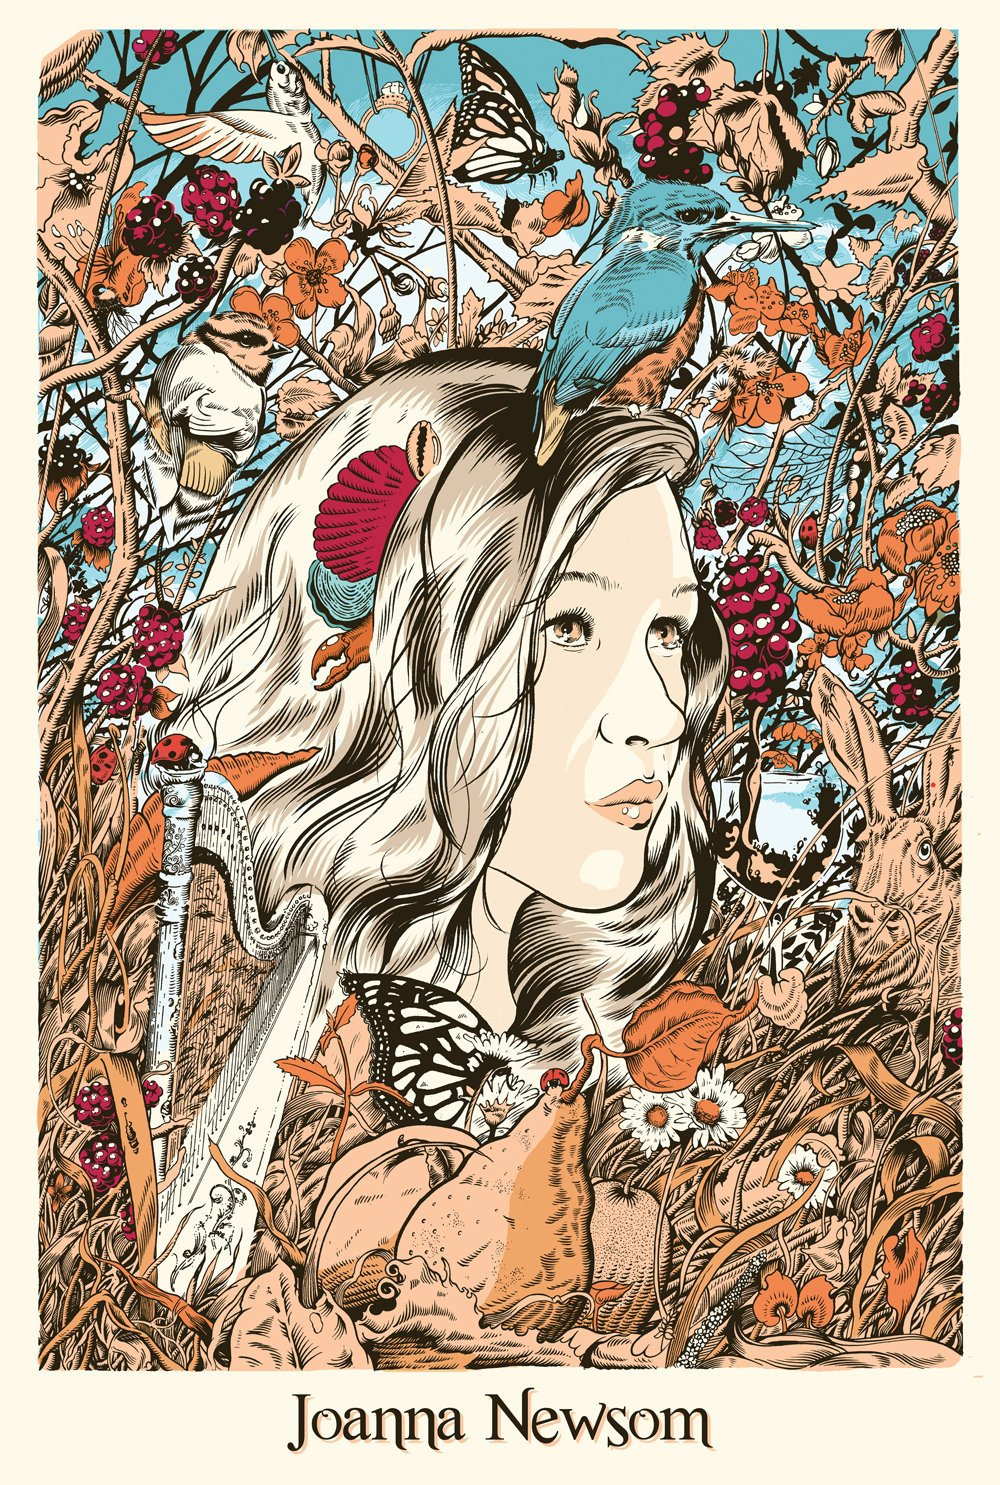 joanna_newsom_final_piece